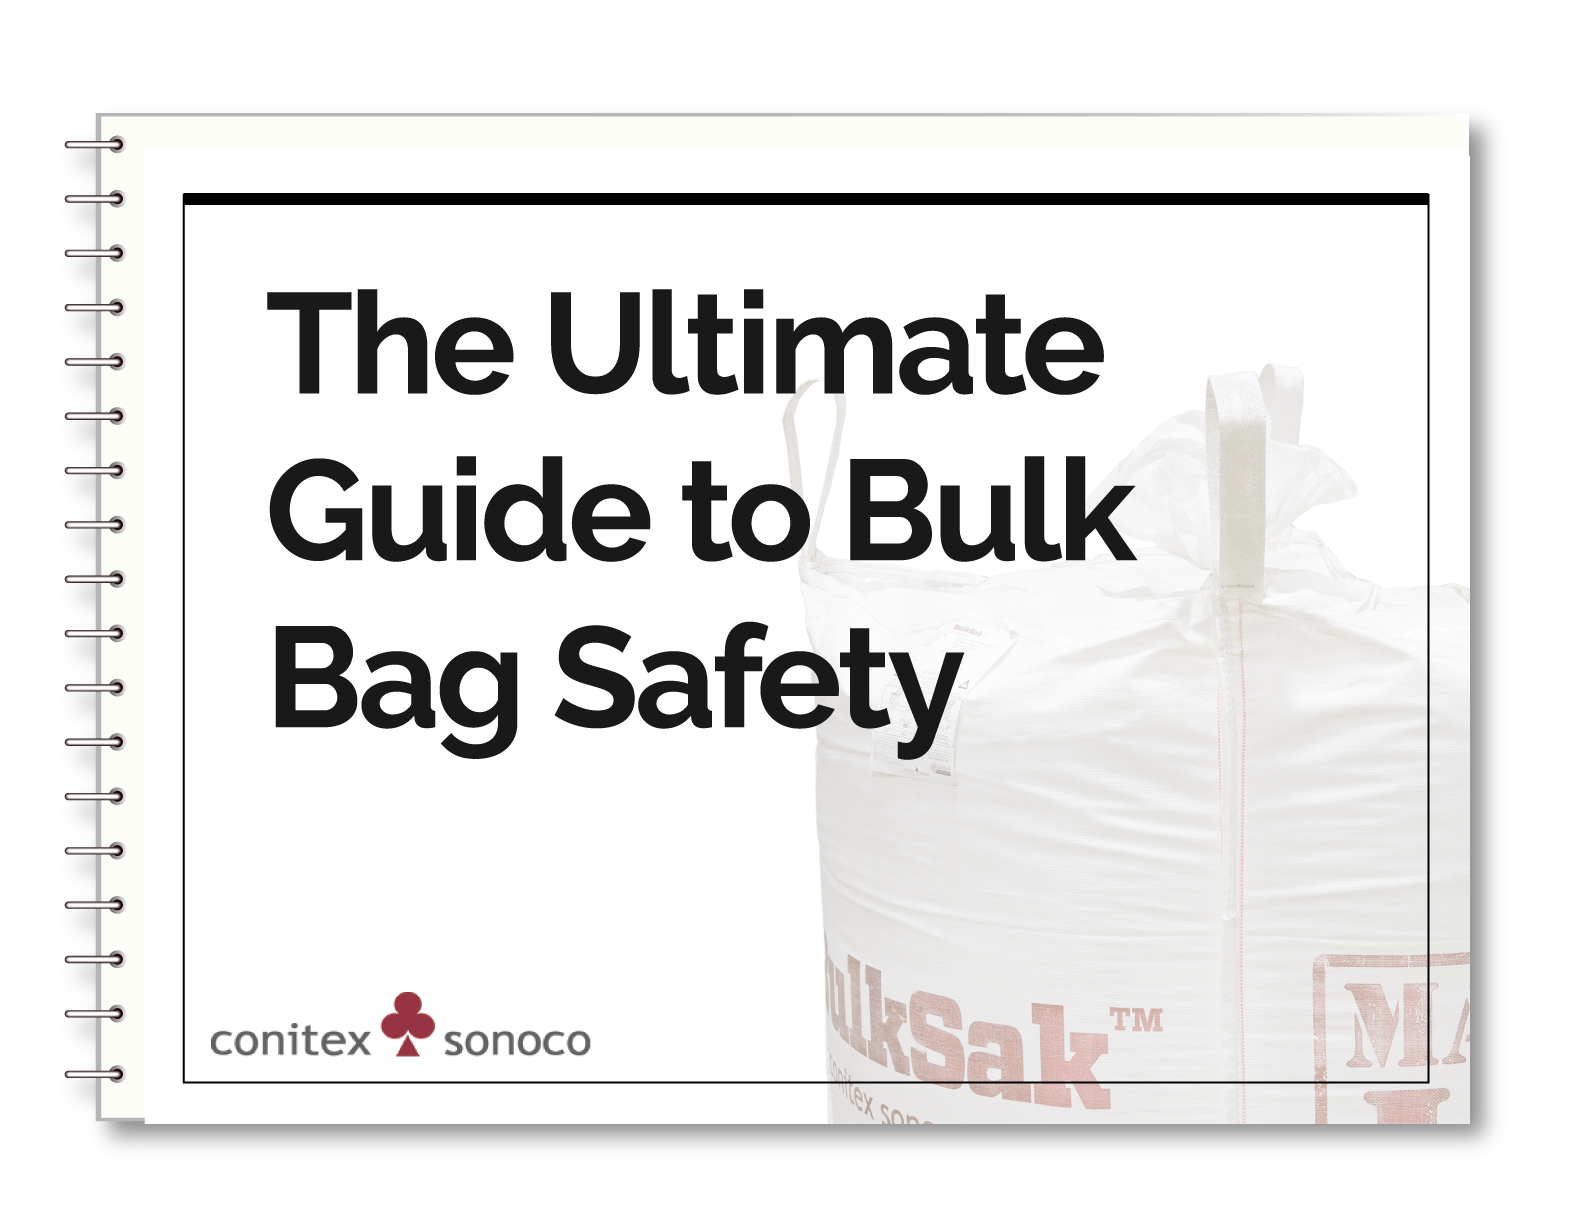 The-Ultimate-Guide-to-Bulk-Bag-Safety